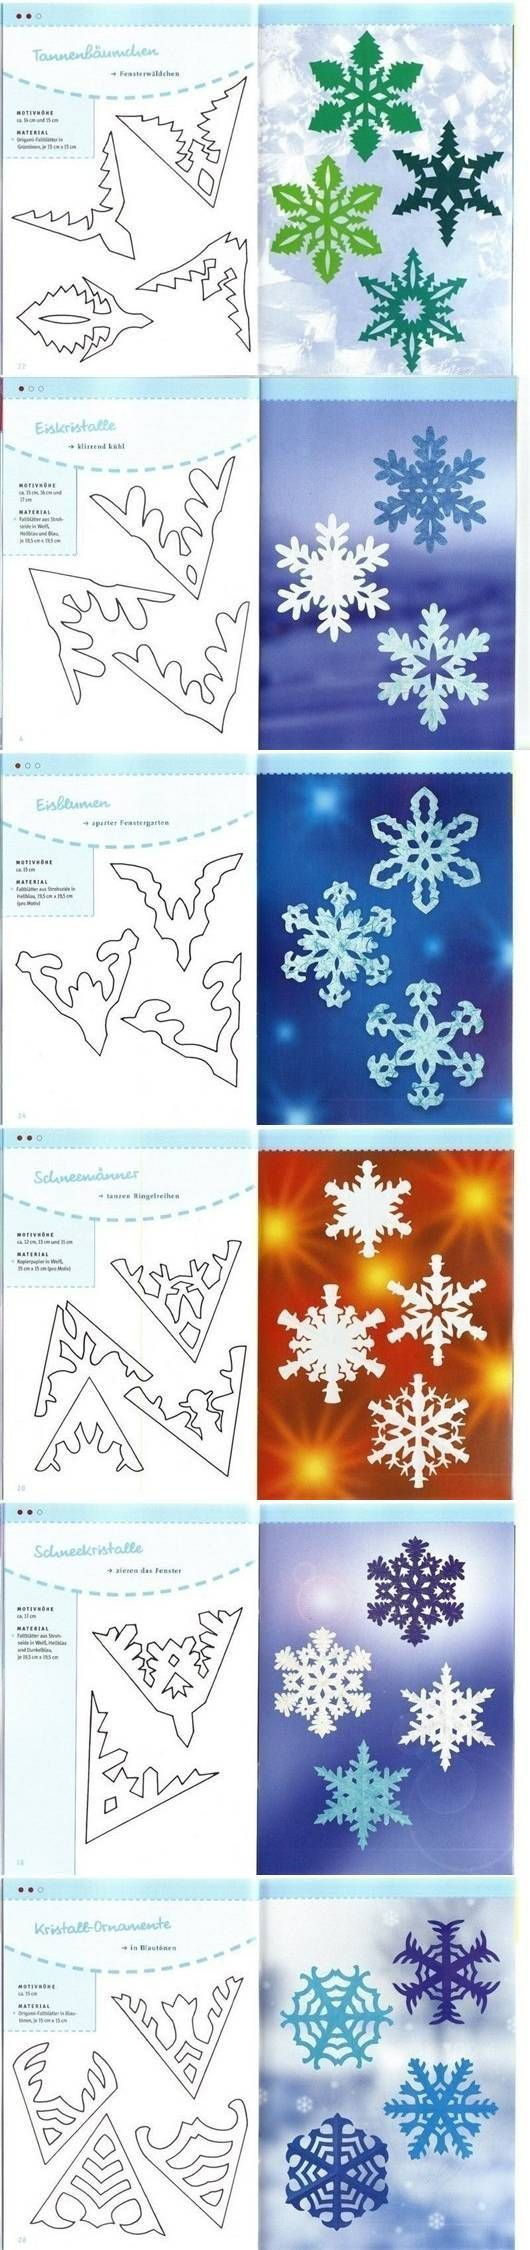 DIY Paper Schemes Snowflakes DIY Projects | UsefulDIY.com: